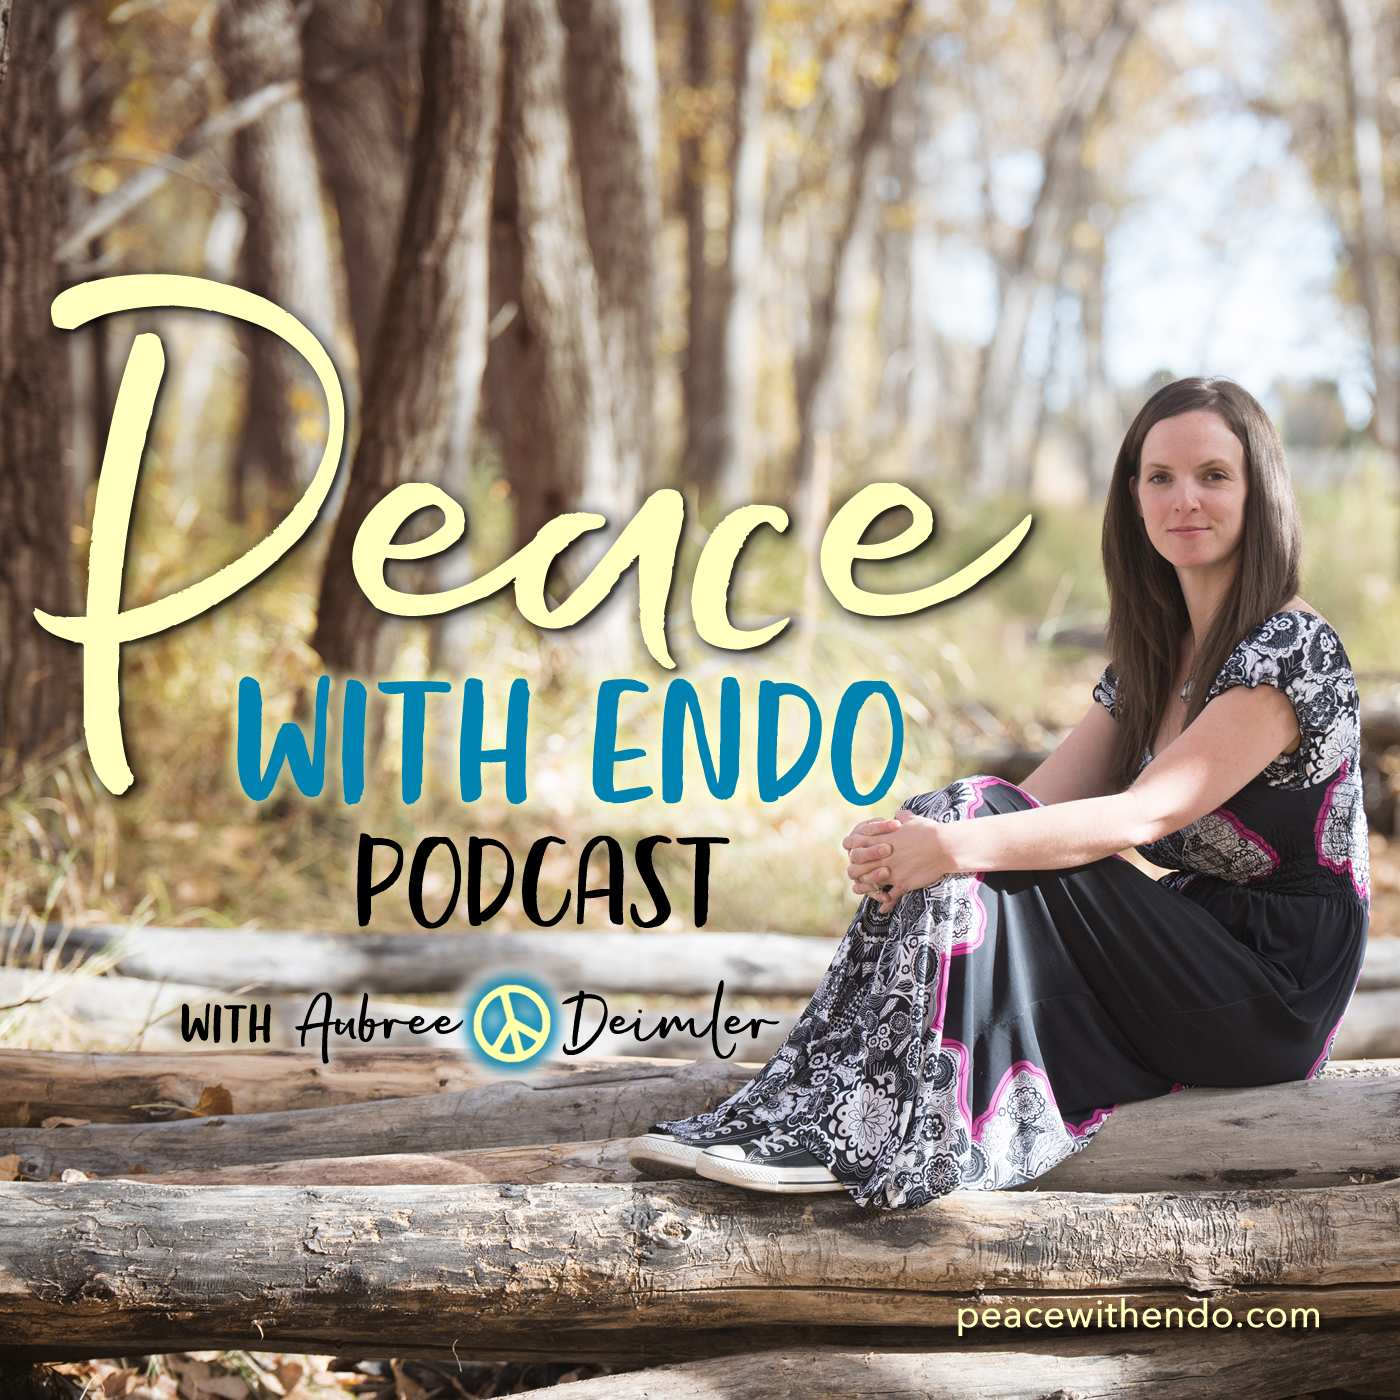 Peace With Endo